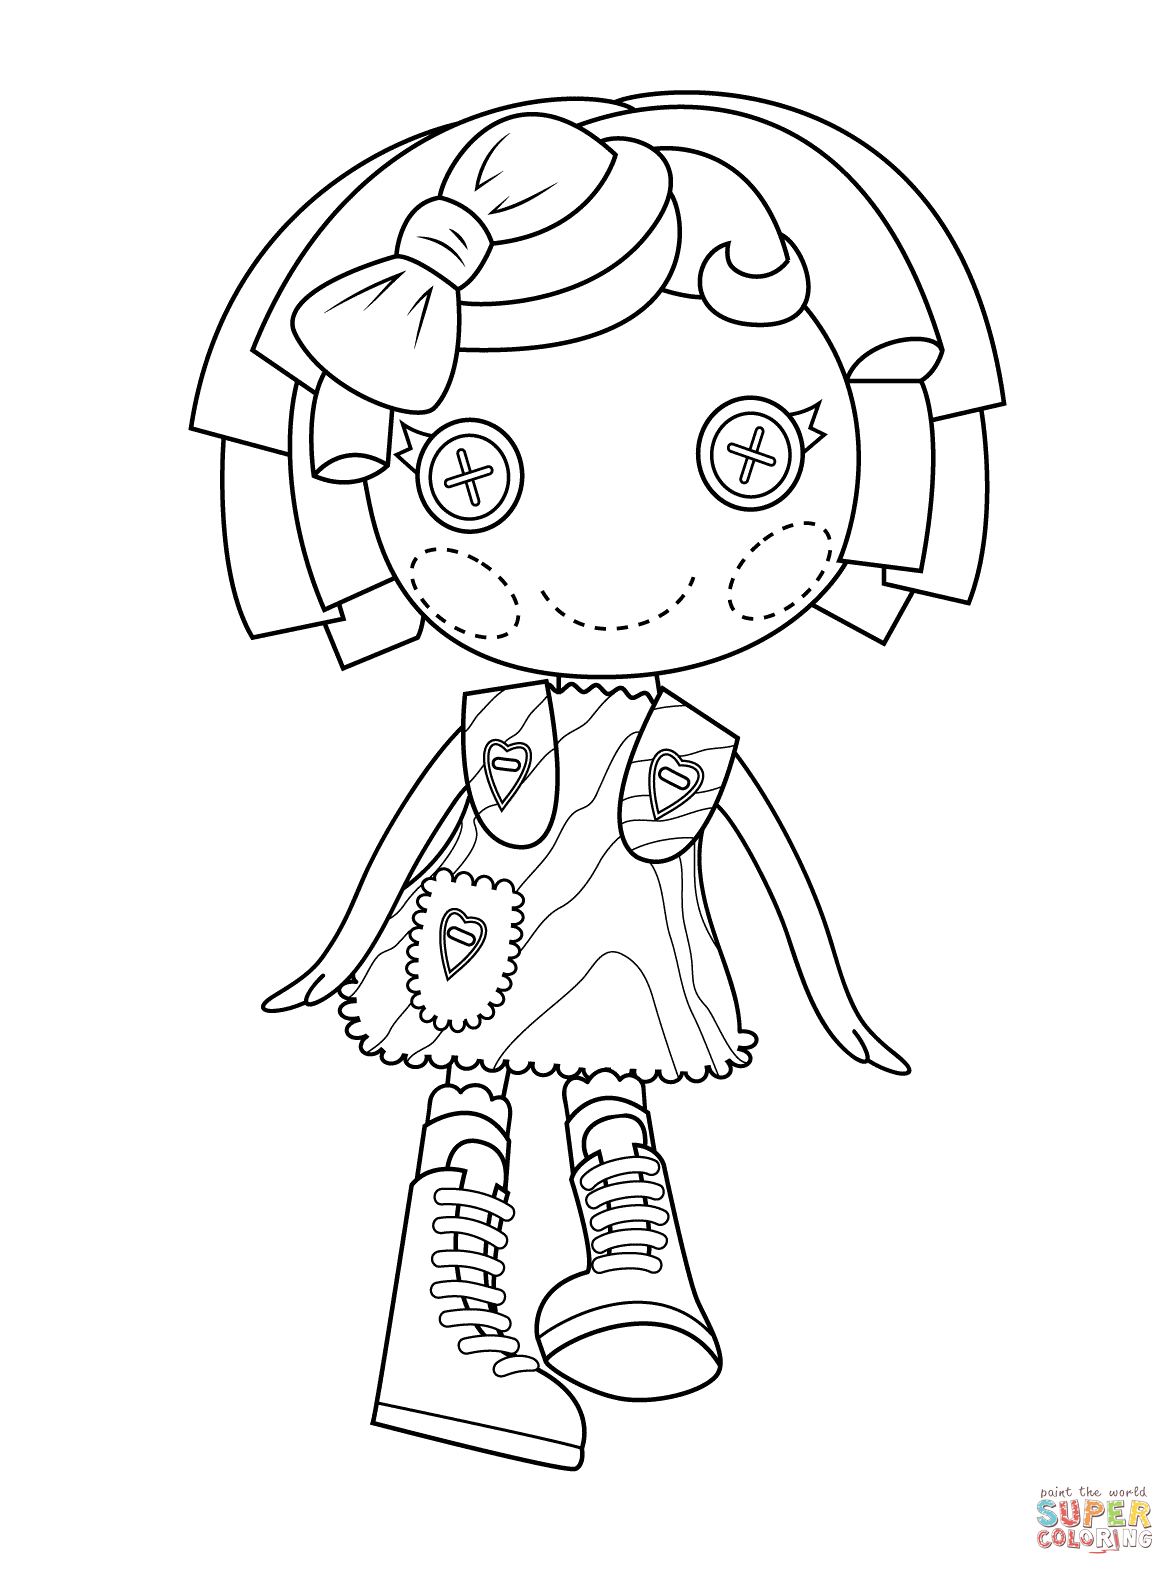 Lalaloopsy Pillow Featherbed Coloring Page